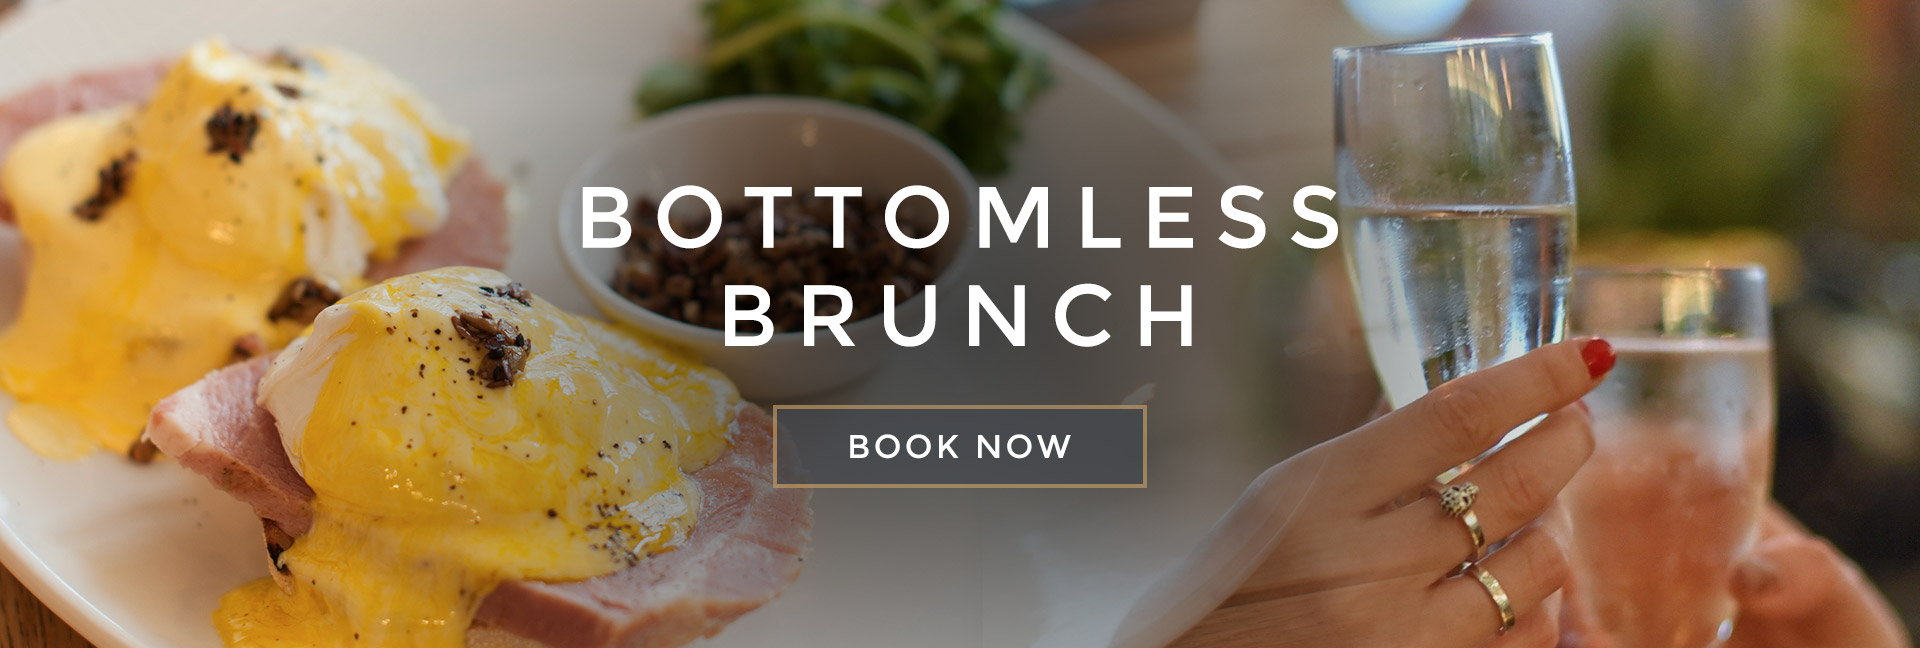 Bottomless Brunch at All Bar One Glasgow - Book now